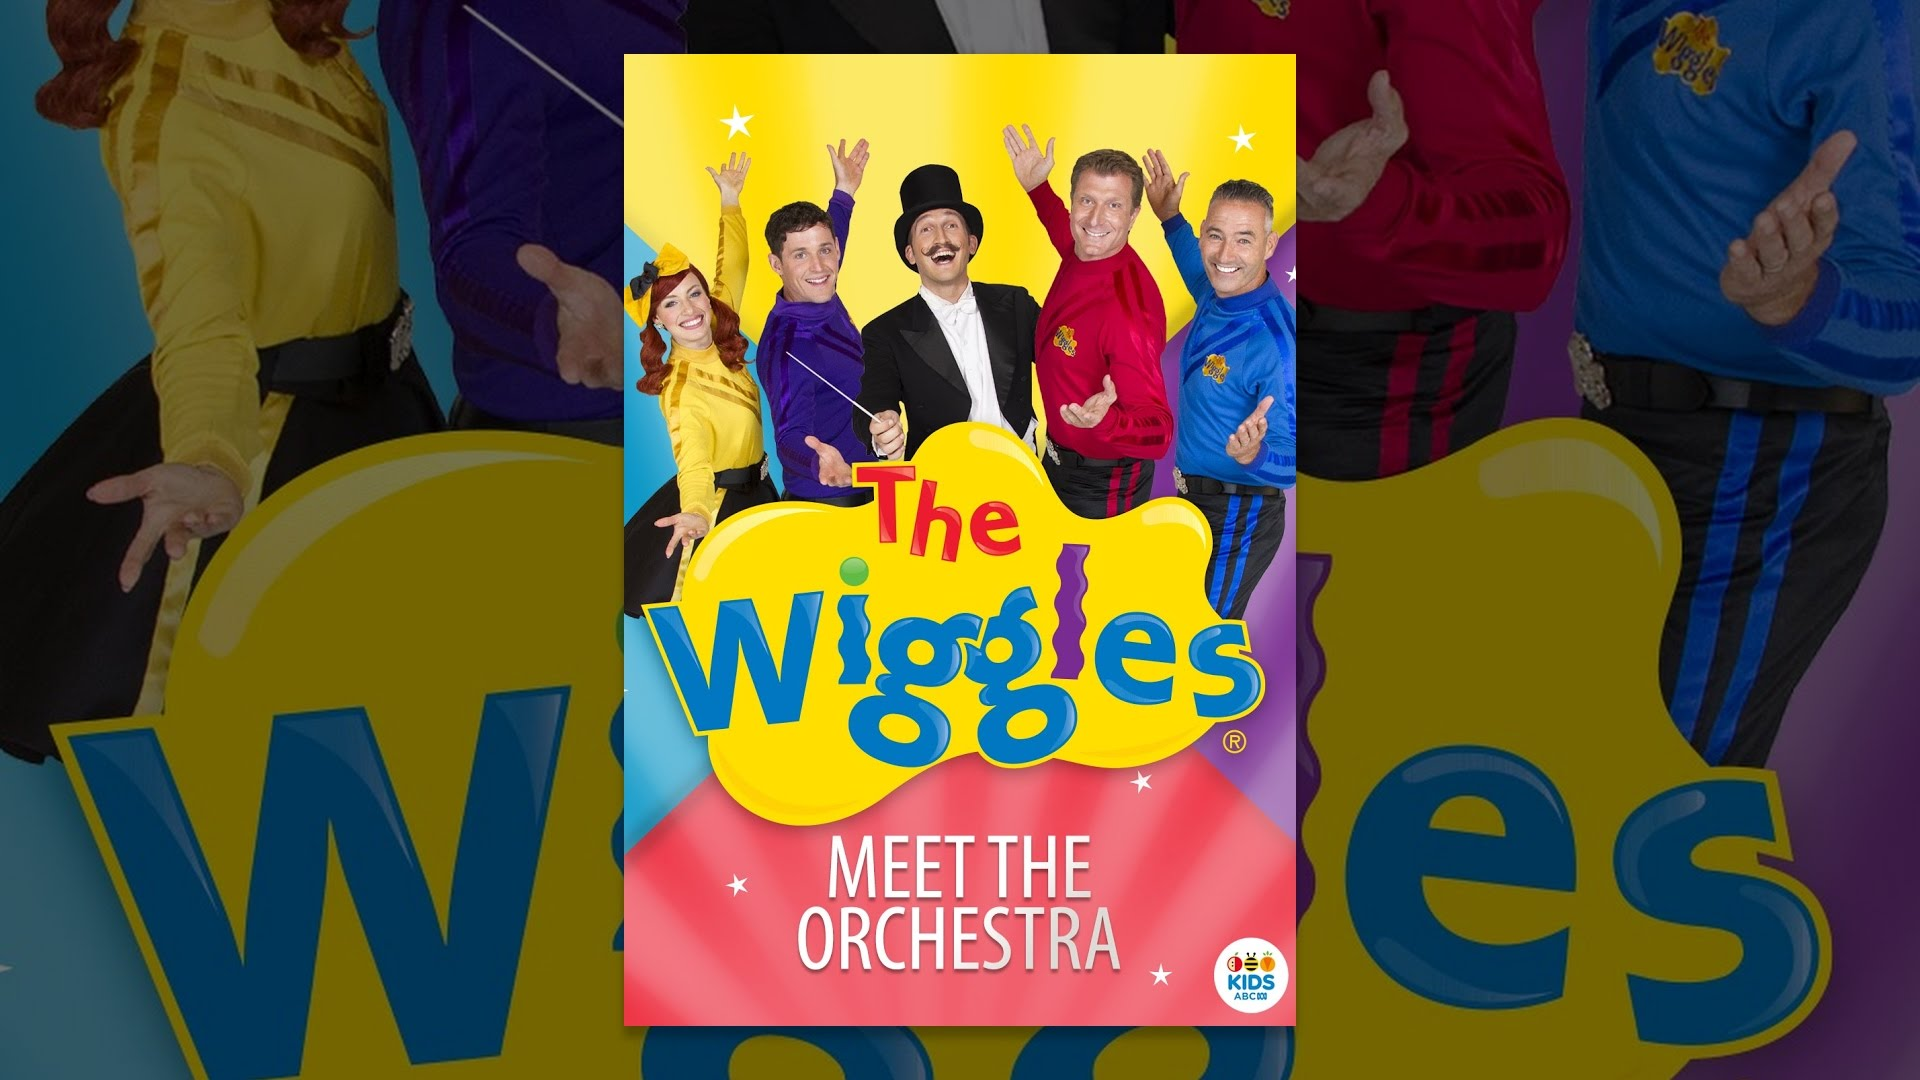 the wiggles meet orchestra trailer